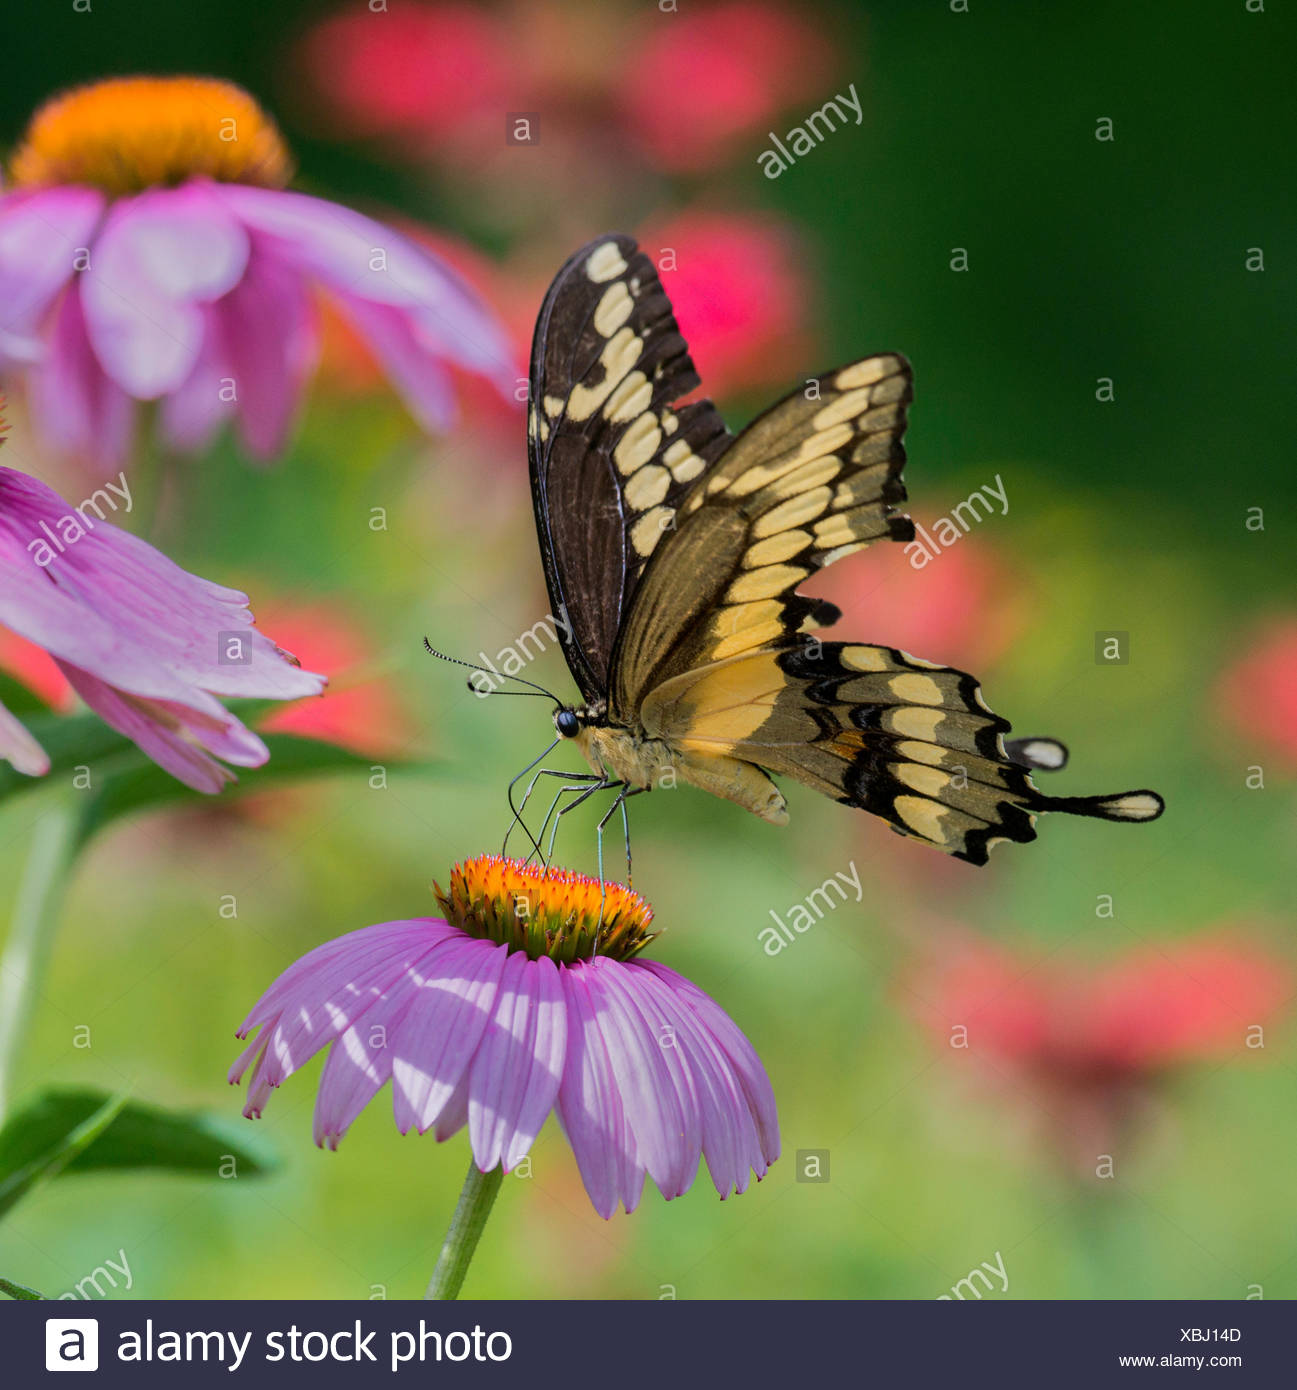 Giant Swallowtail butterfly, Papilio cresphontes, on a purple cone flower, north eastern Ontario, Canada - Stock Image